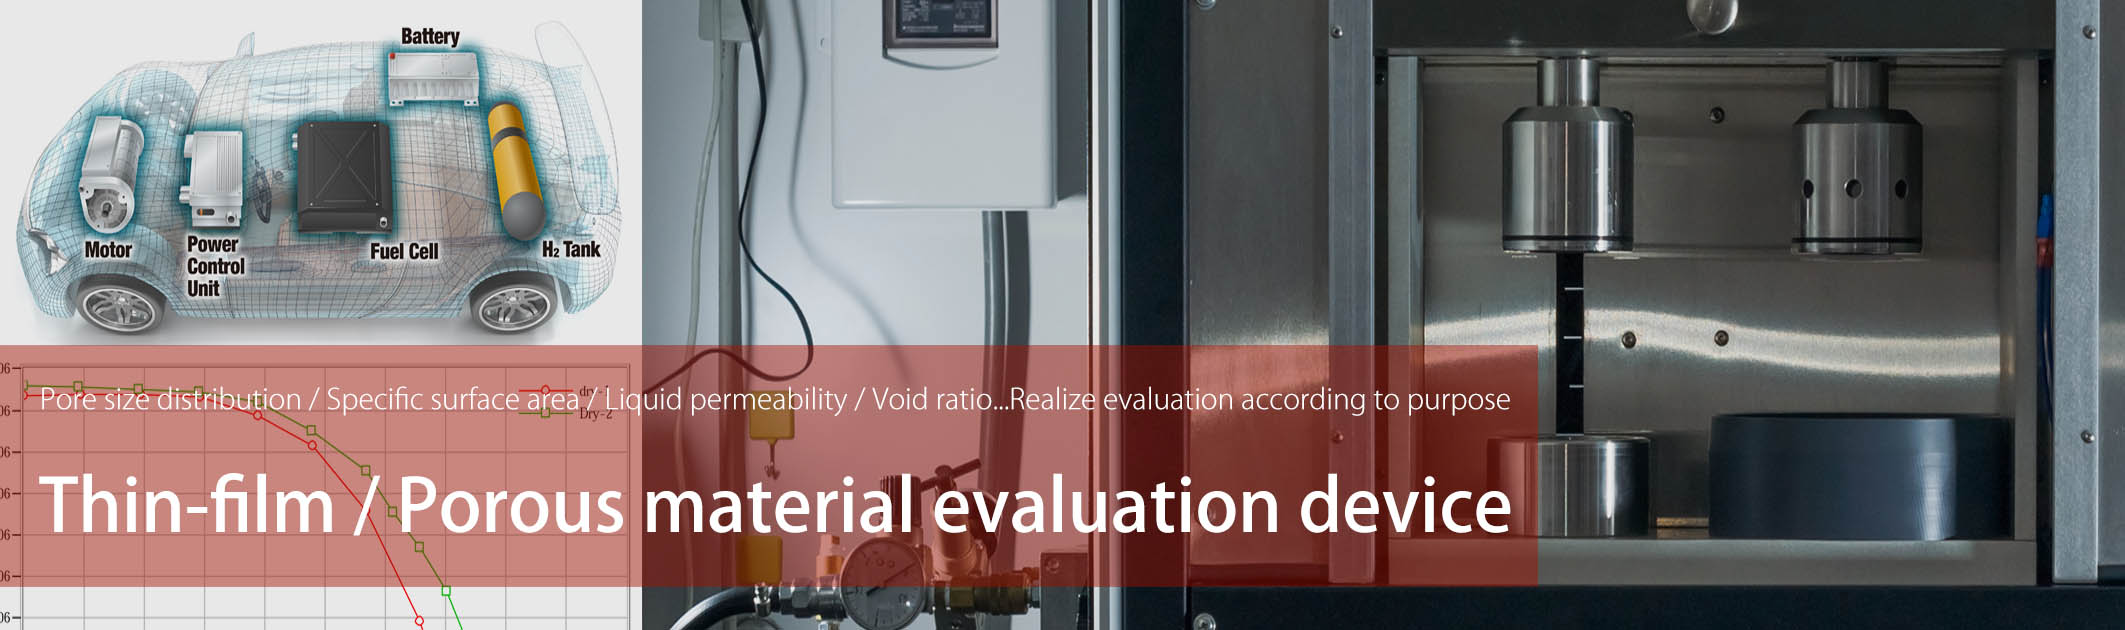 Pore size distribution, specific surface area, liquid permeability and porosity evaluation of prior art materials such as fuel cells and hollow fibers are achieved. Thin film porous material evaluation equipment lineup.